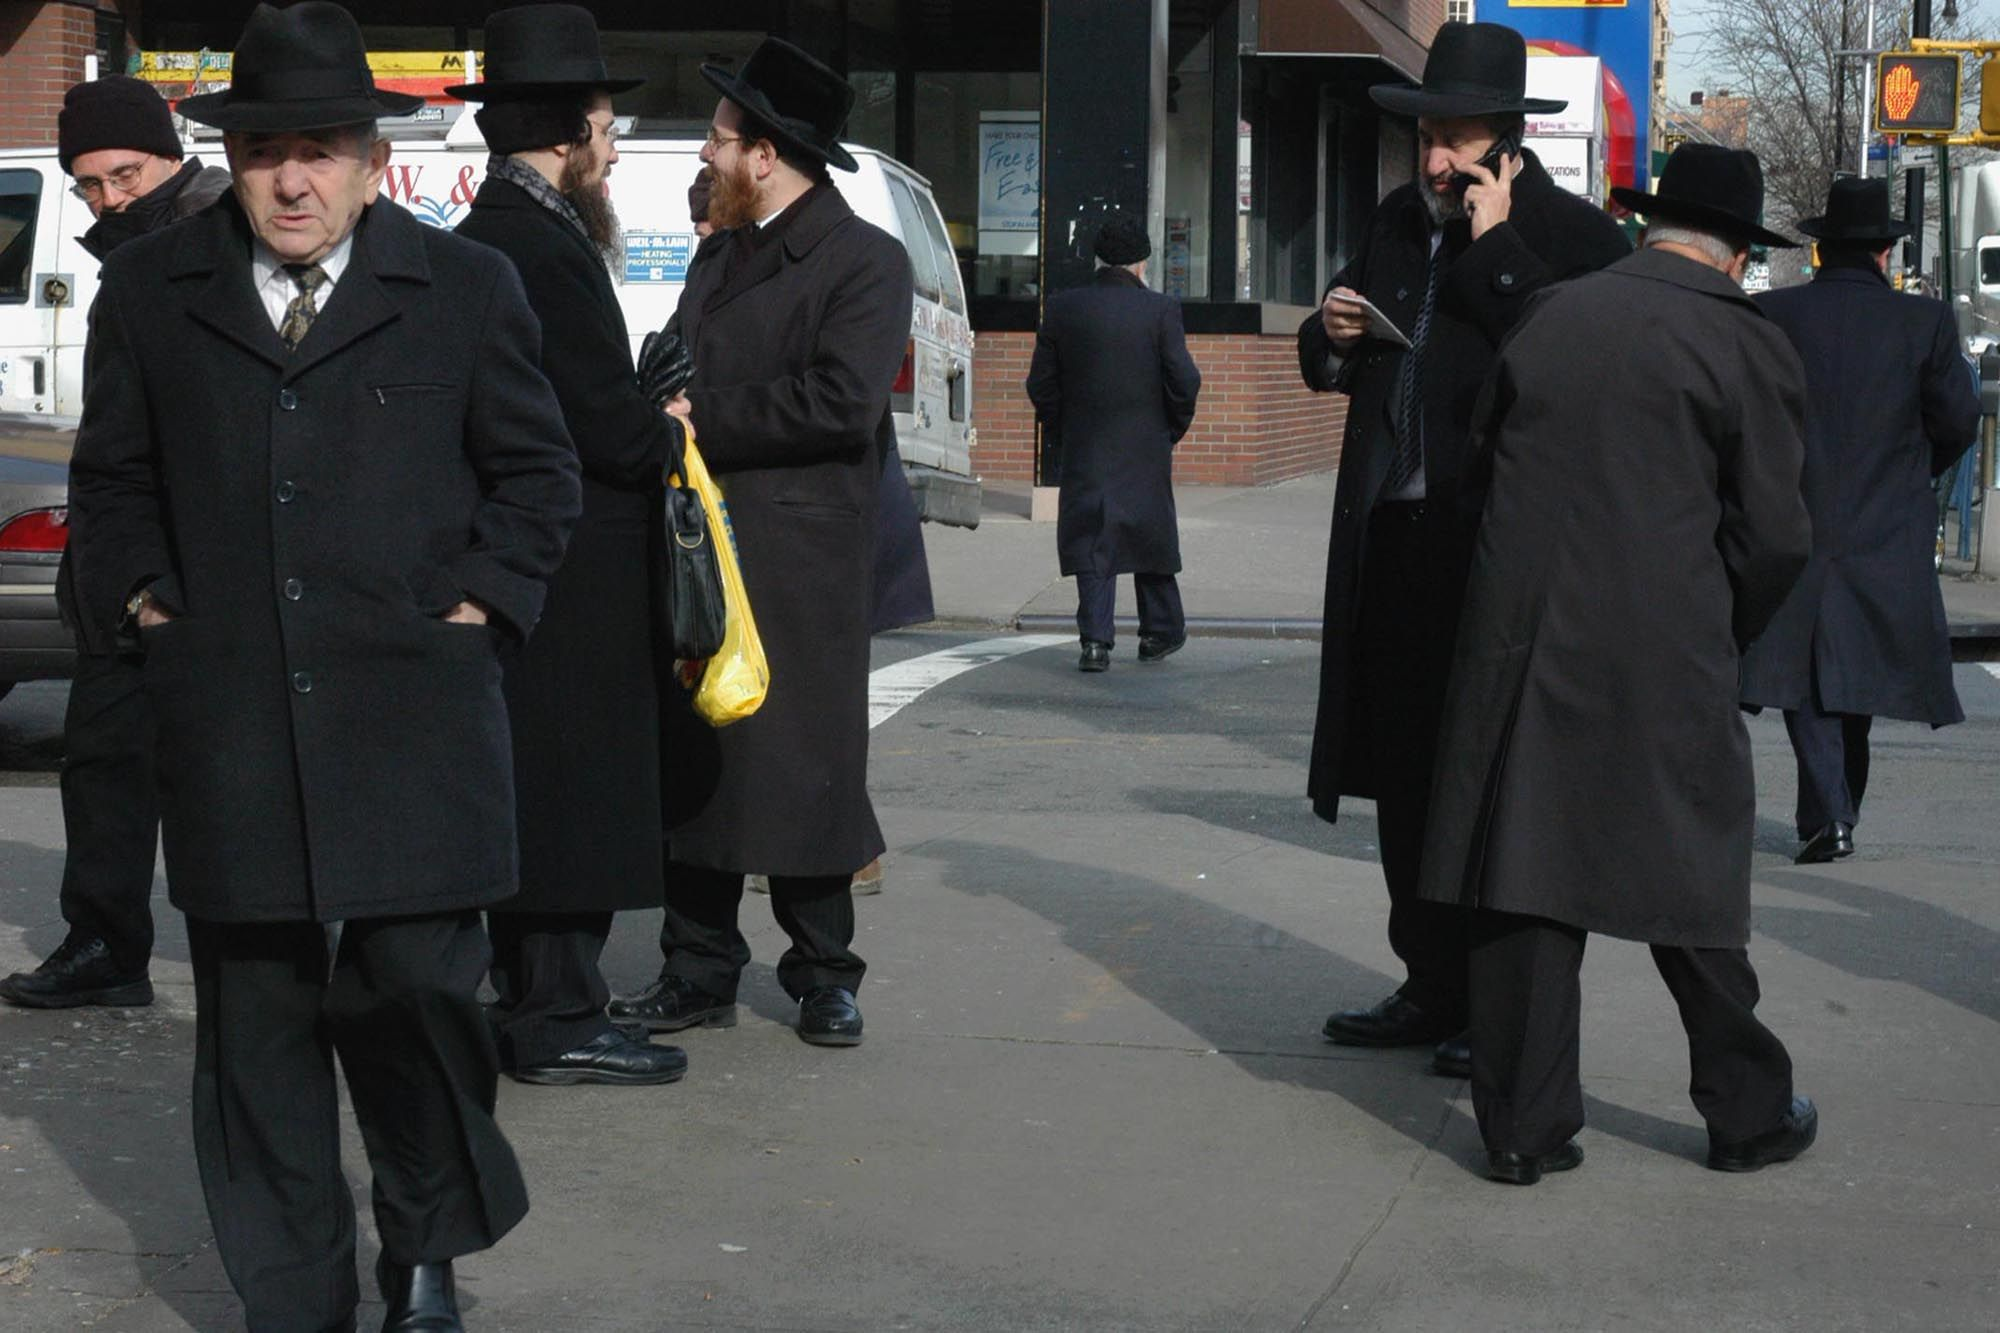 NY Civil Rights Advocate Under Fire For Calling Jewish Community 'Extremist Bloc'